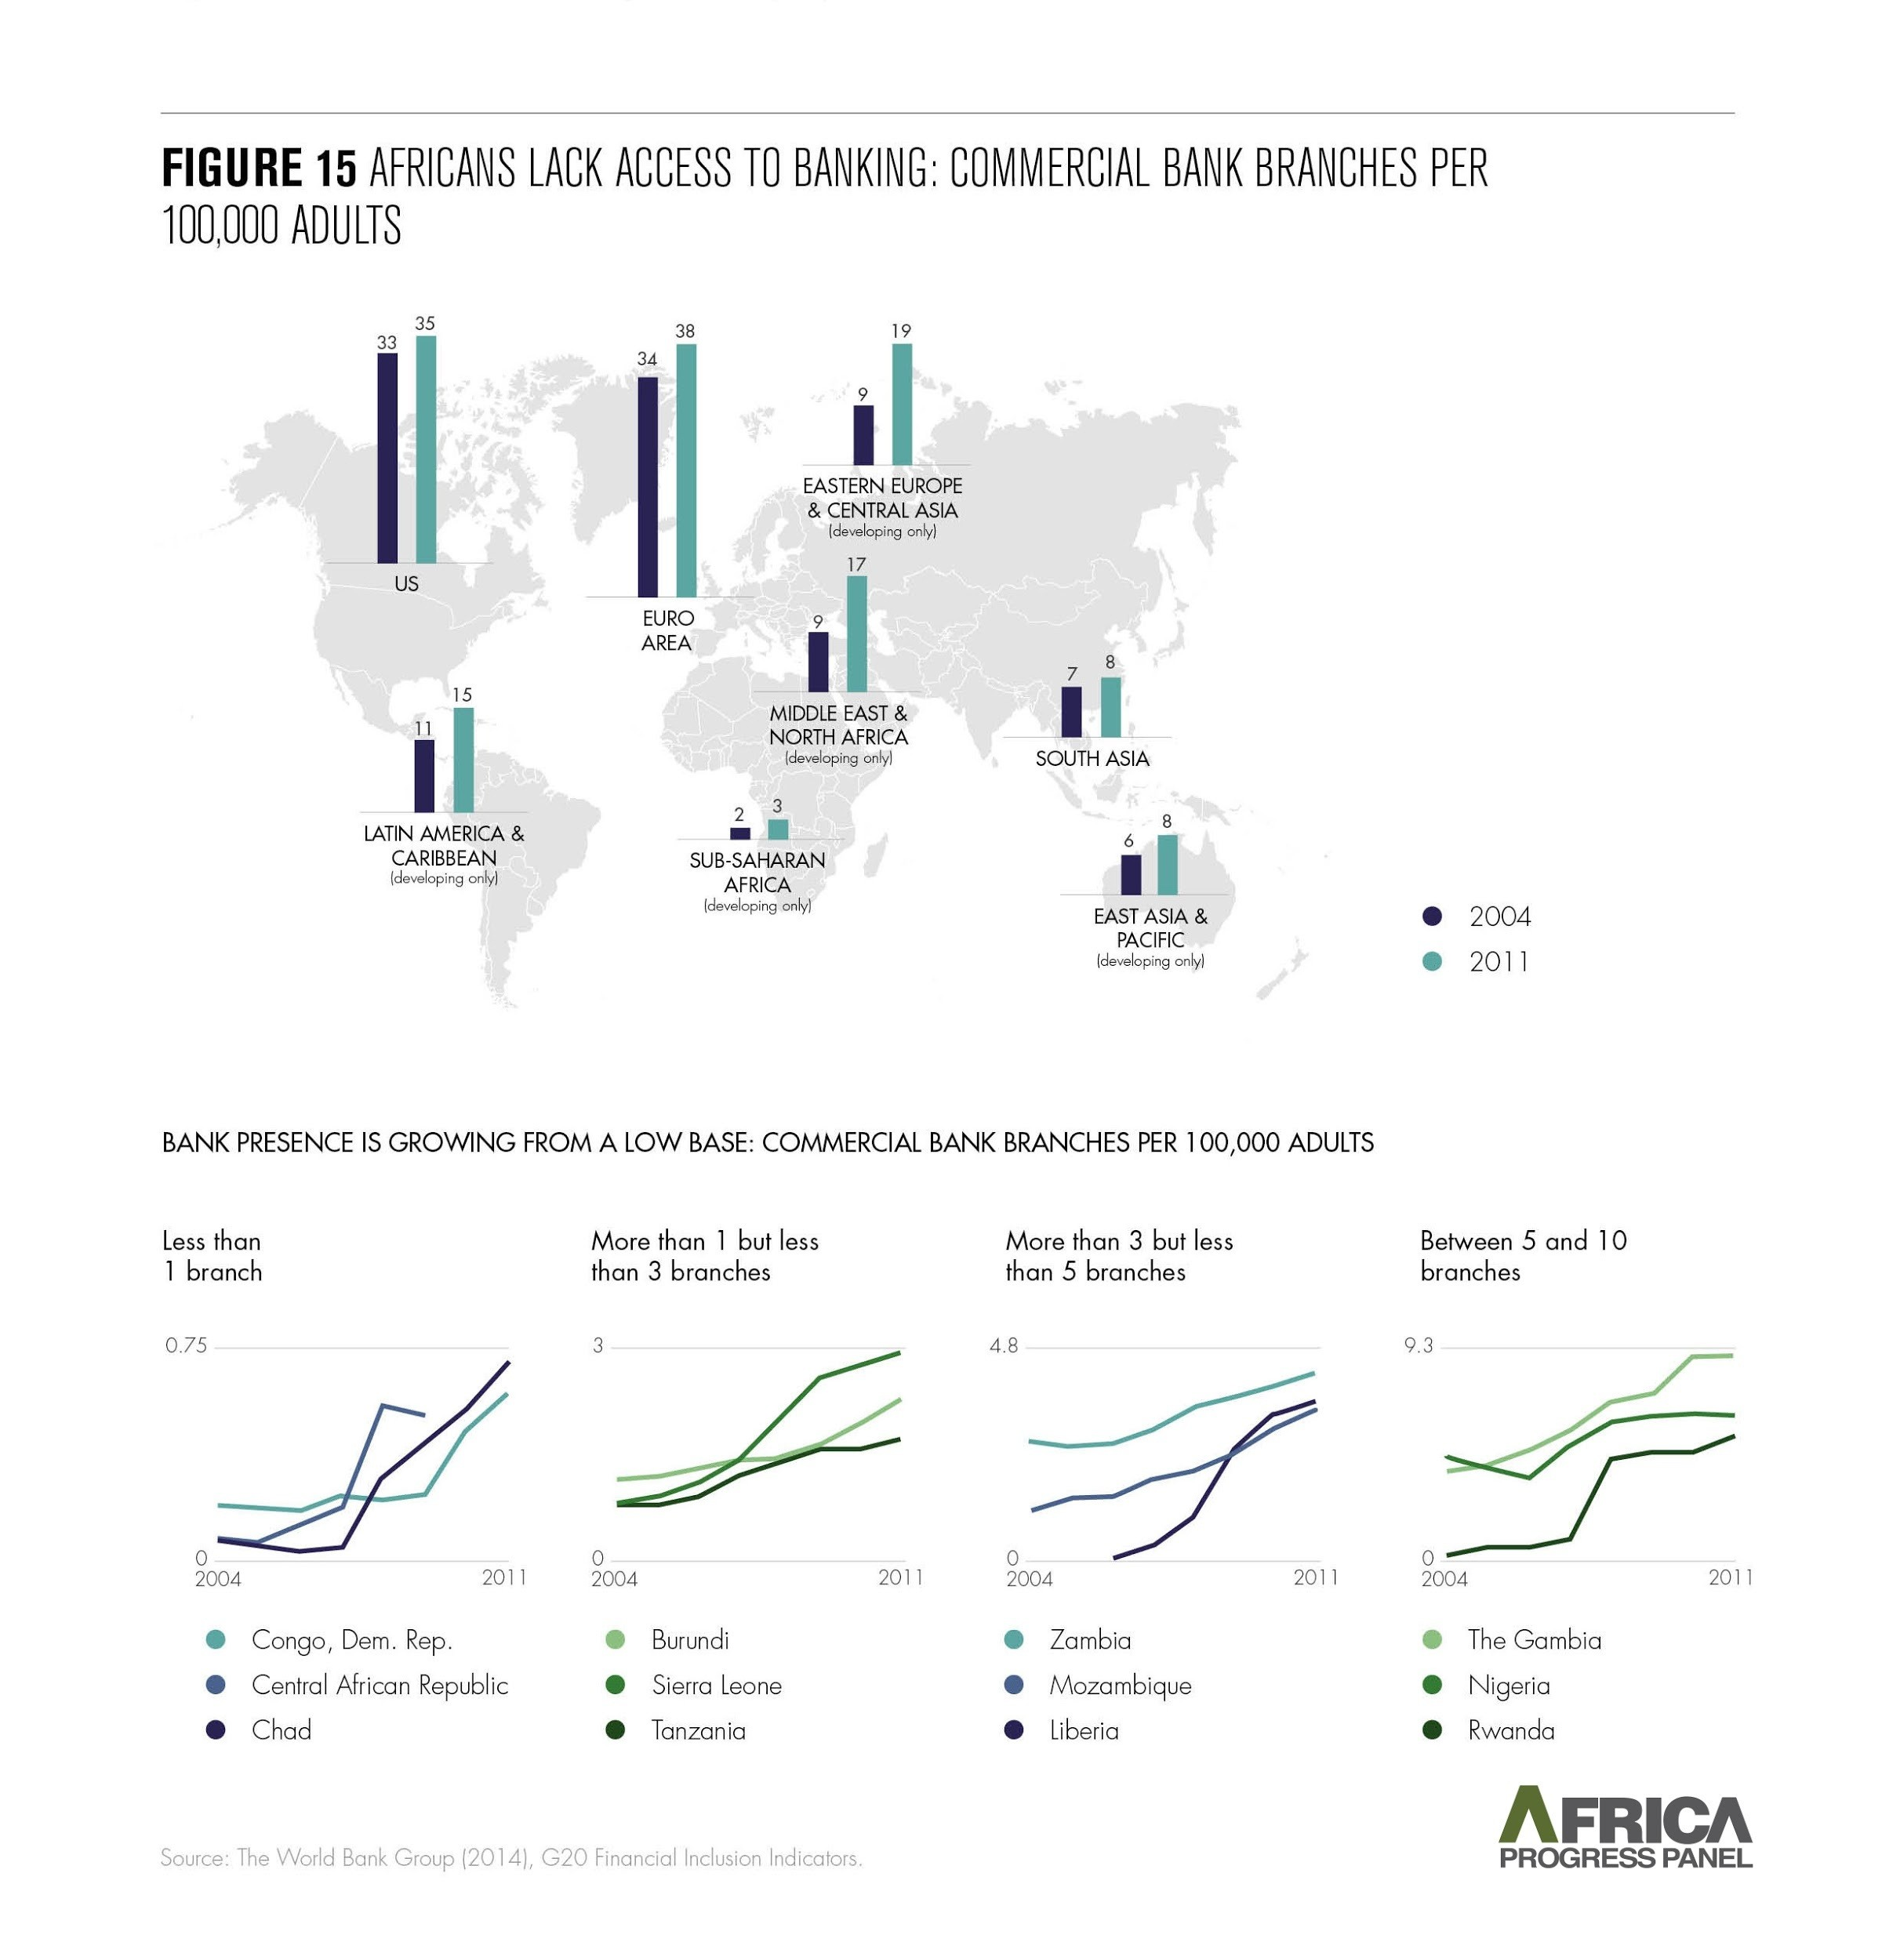 Commercial bank branches per 100,000 adults in Africa